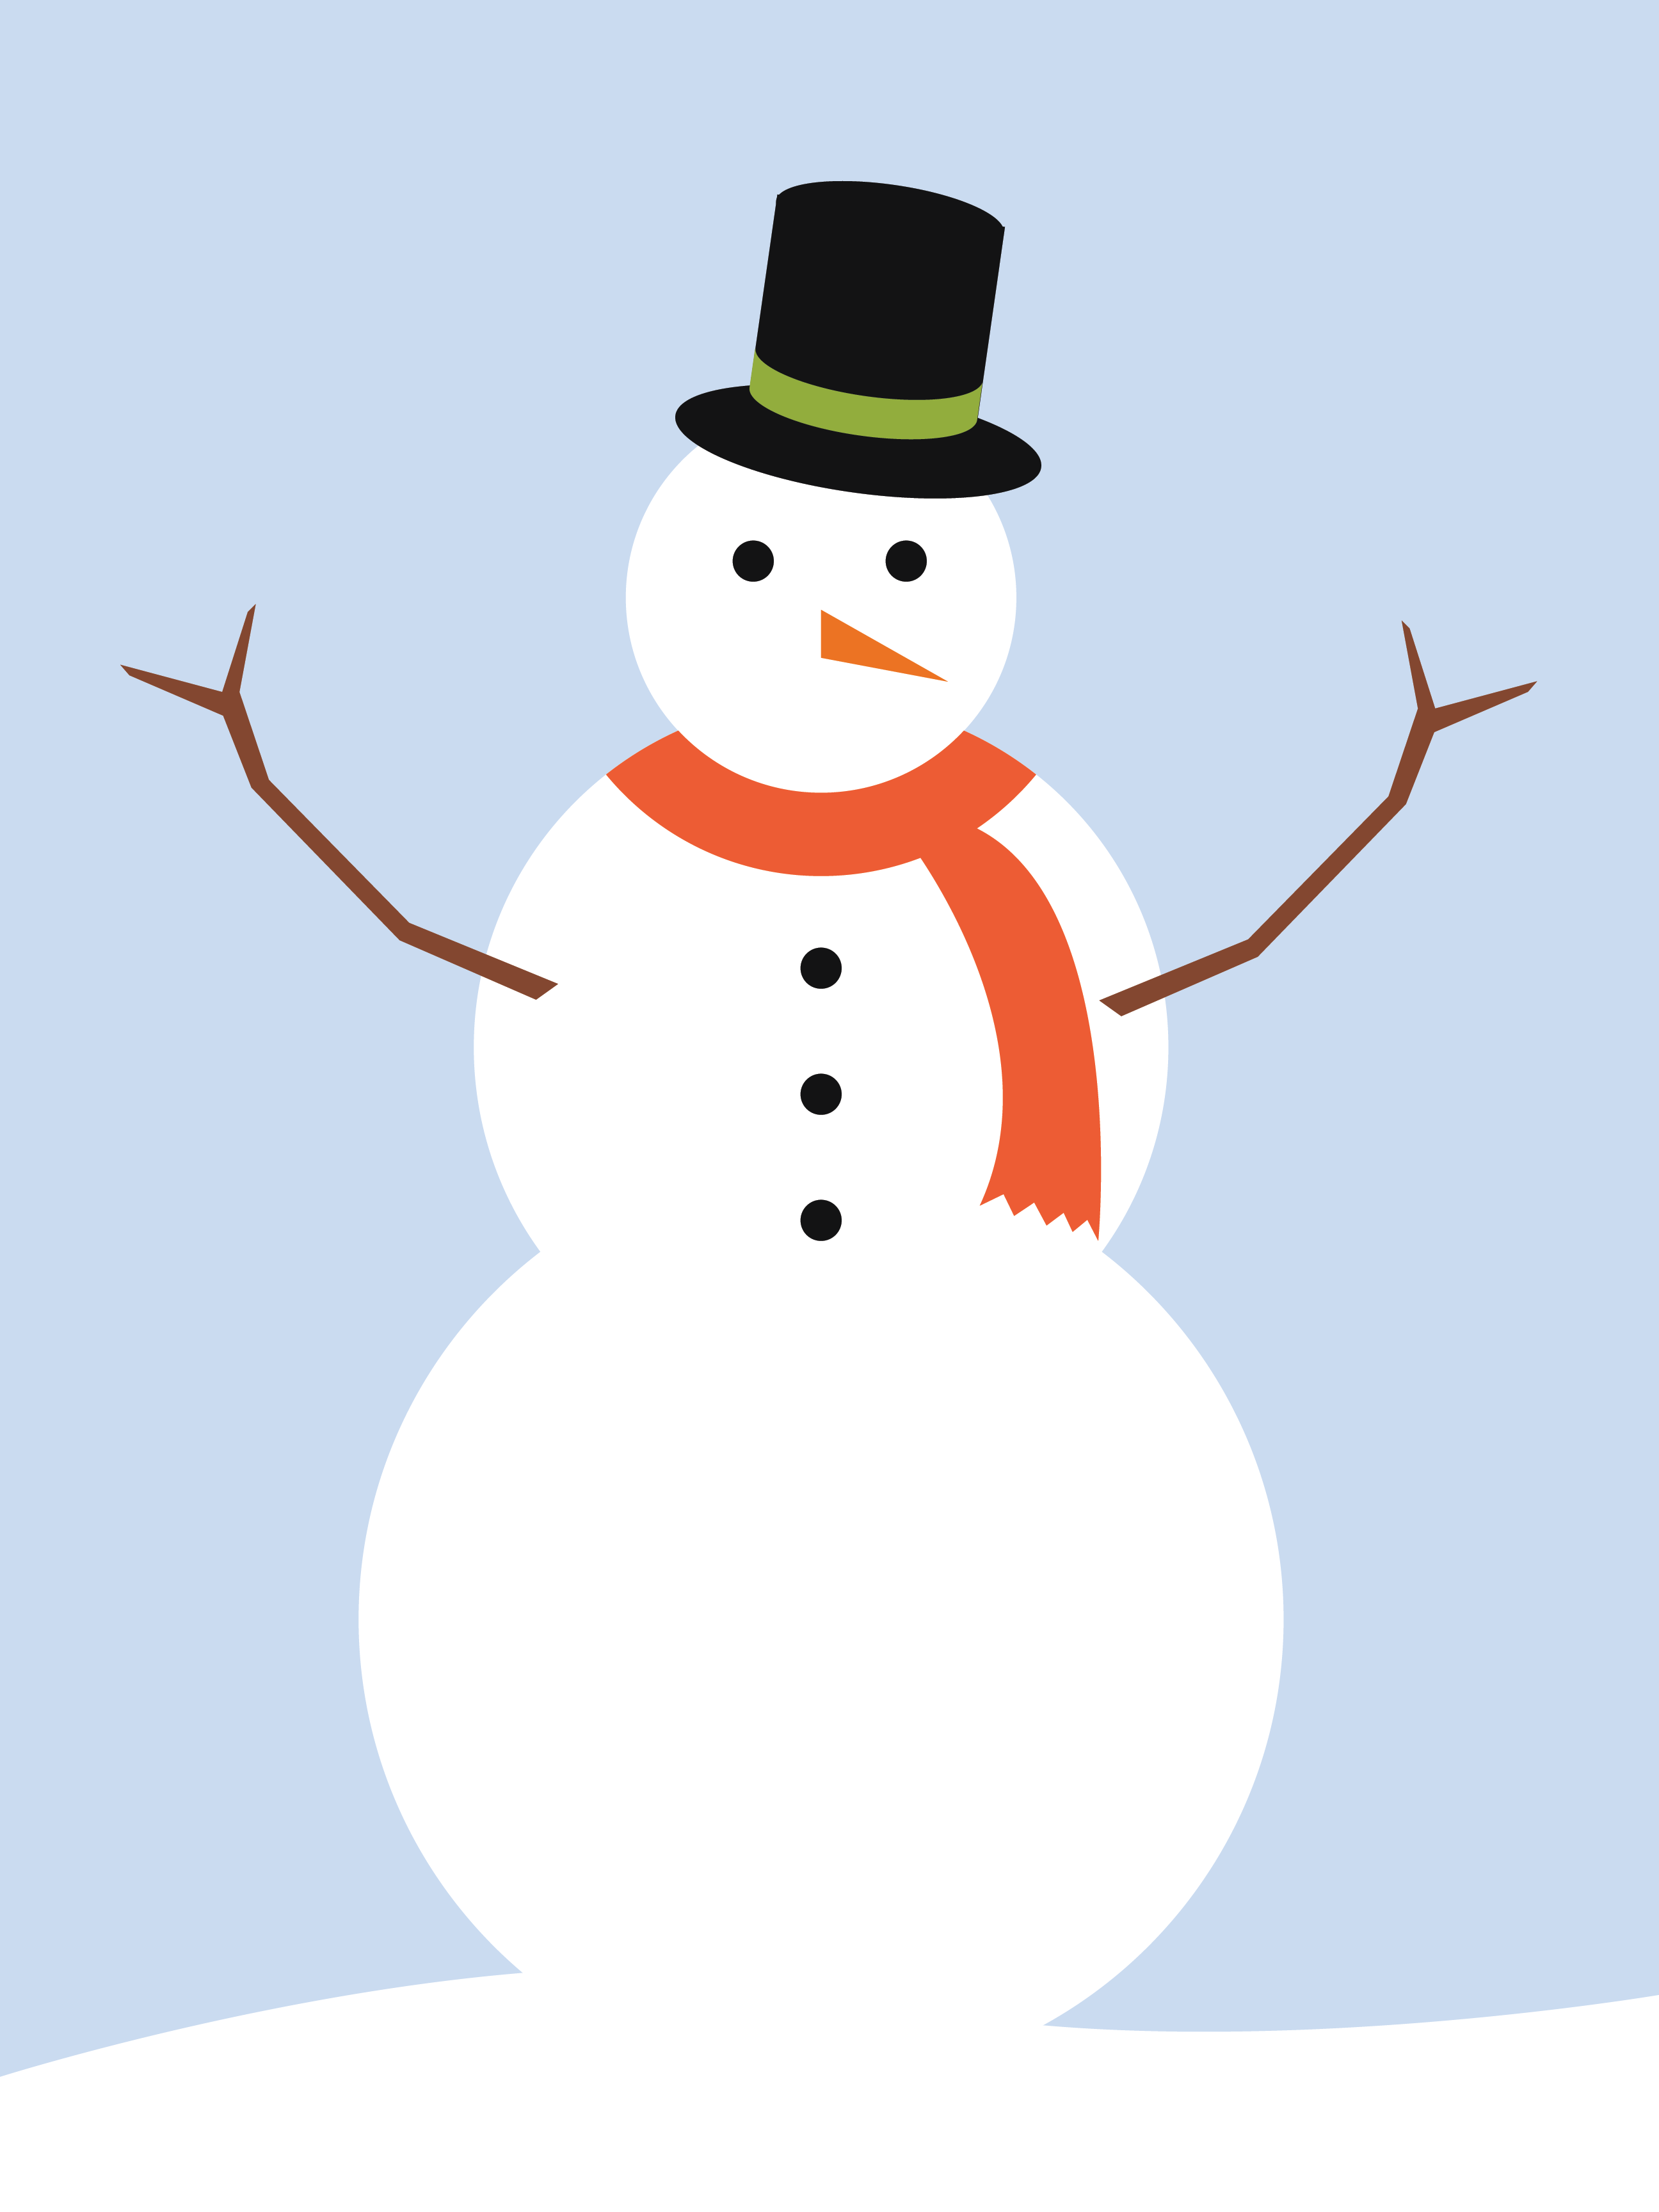 Attached to this post: Snowman.png (114.72 KB) - Snowman PNG